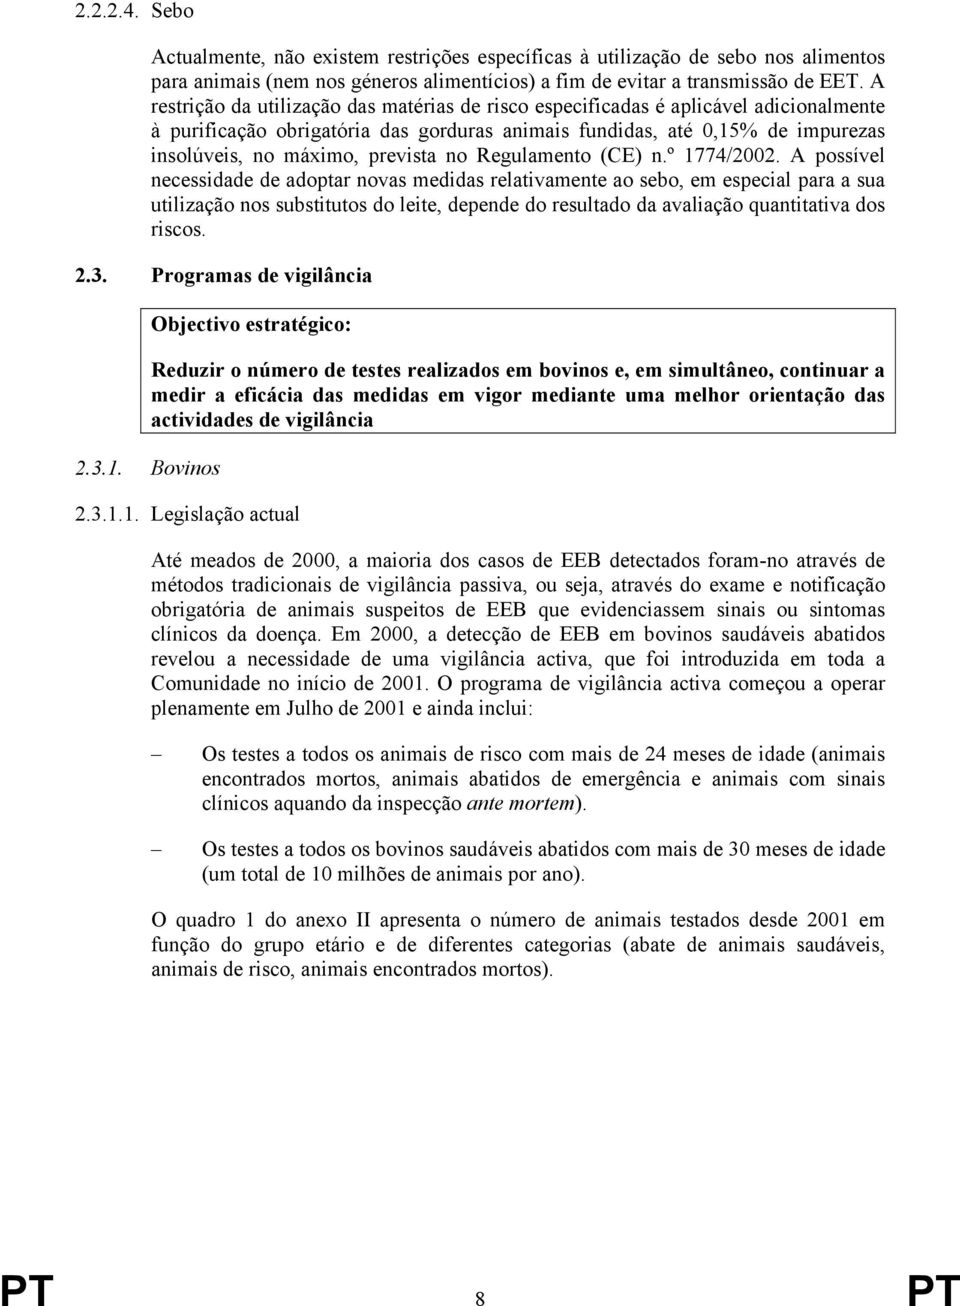 prevista no Regulamento (CE) n.º 1774/2002.